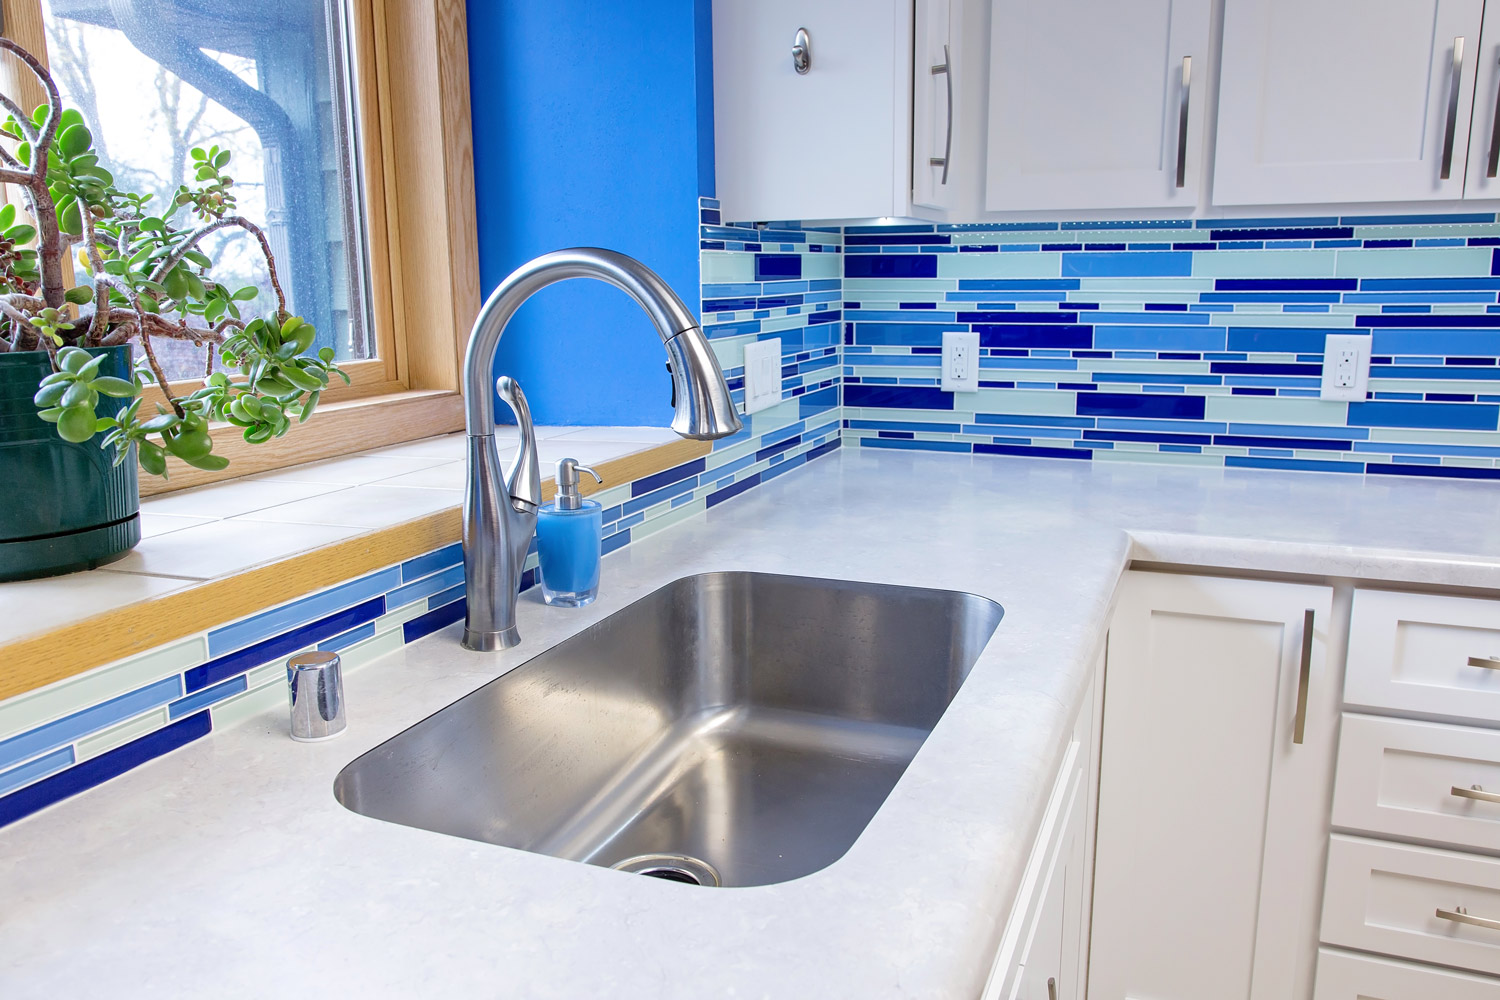 Single Bowl Stainless steel sink with Pull Down Kitchen Faucet